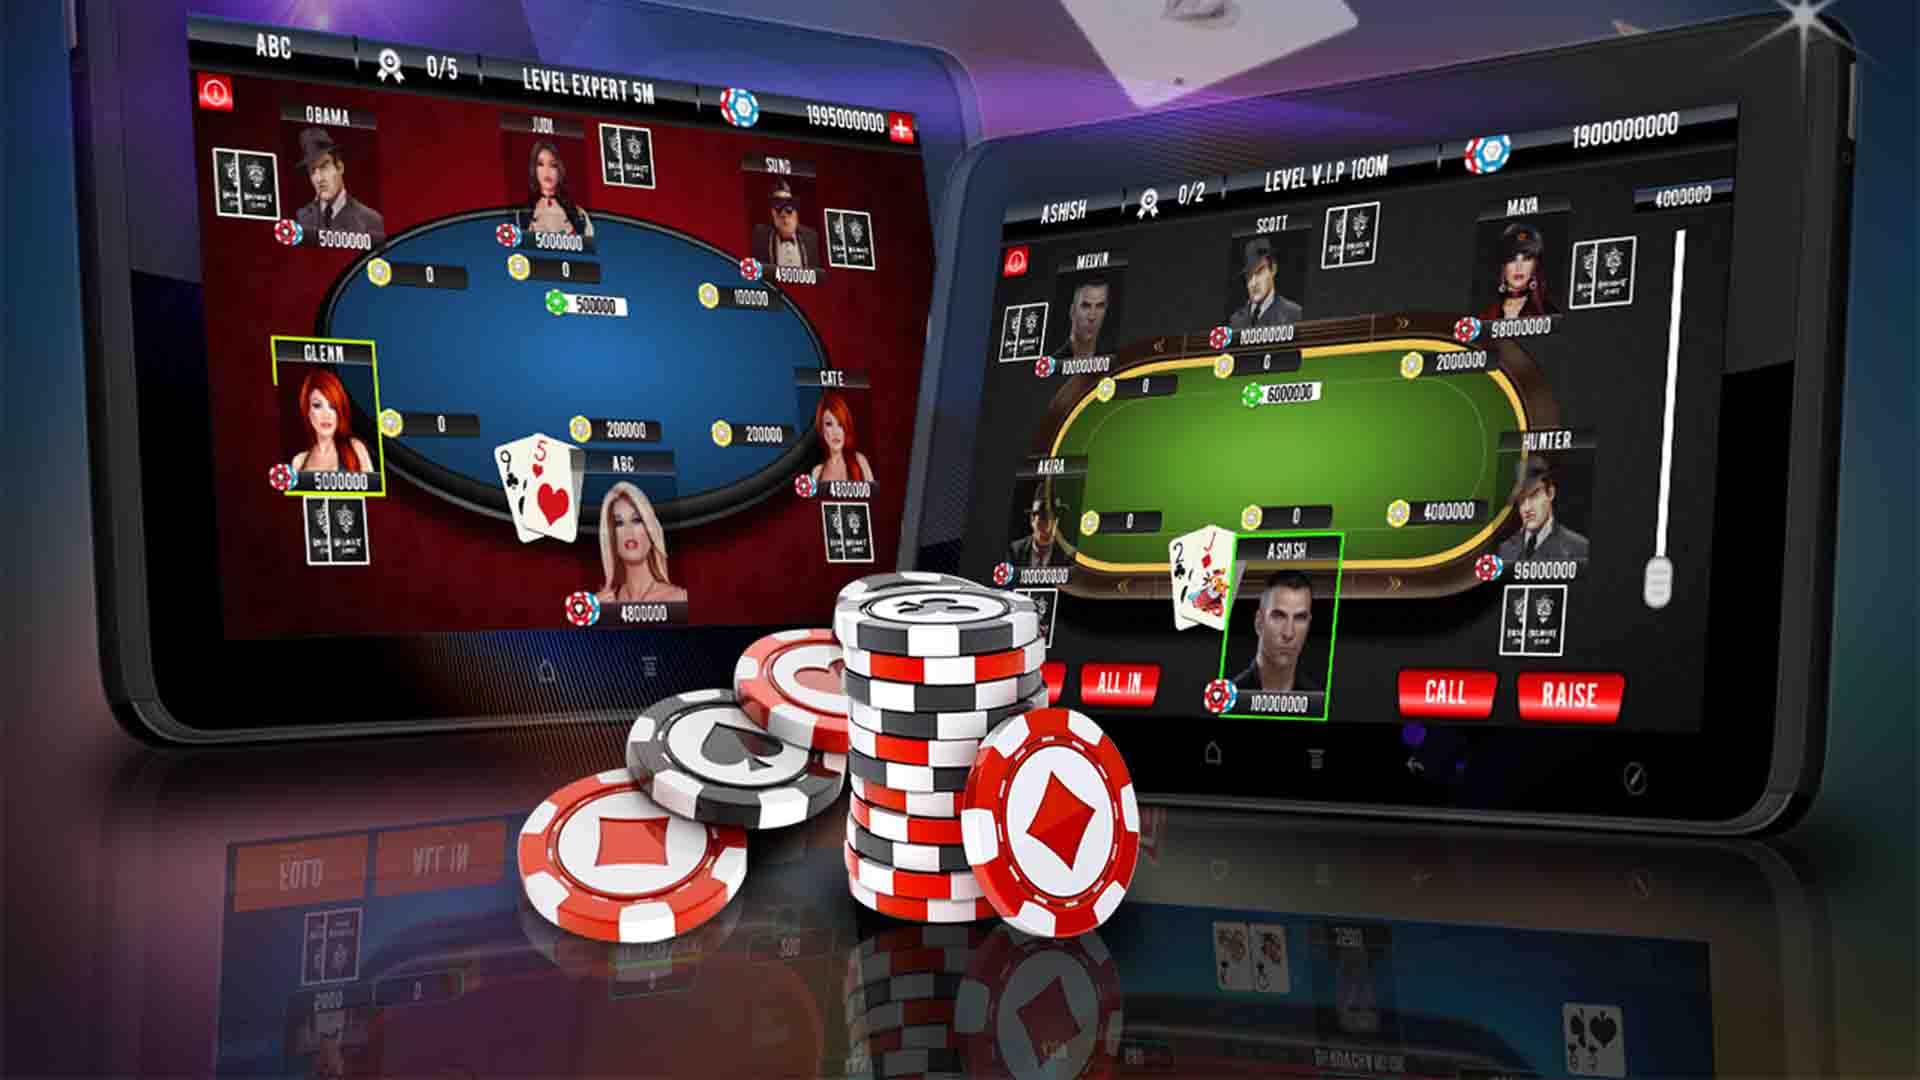 Go To Online Poker Room And Improve Your Skills - Online Poker Room